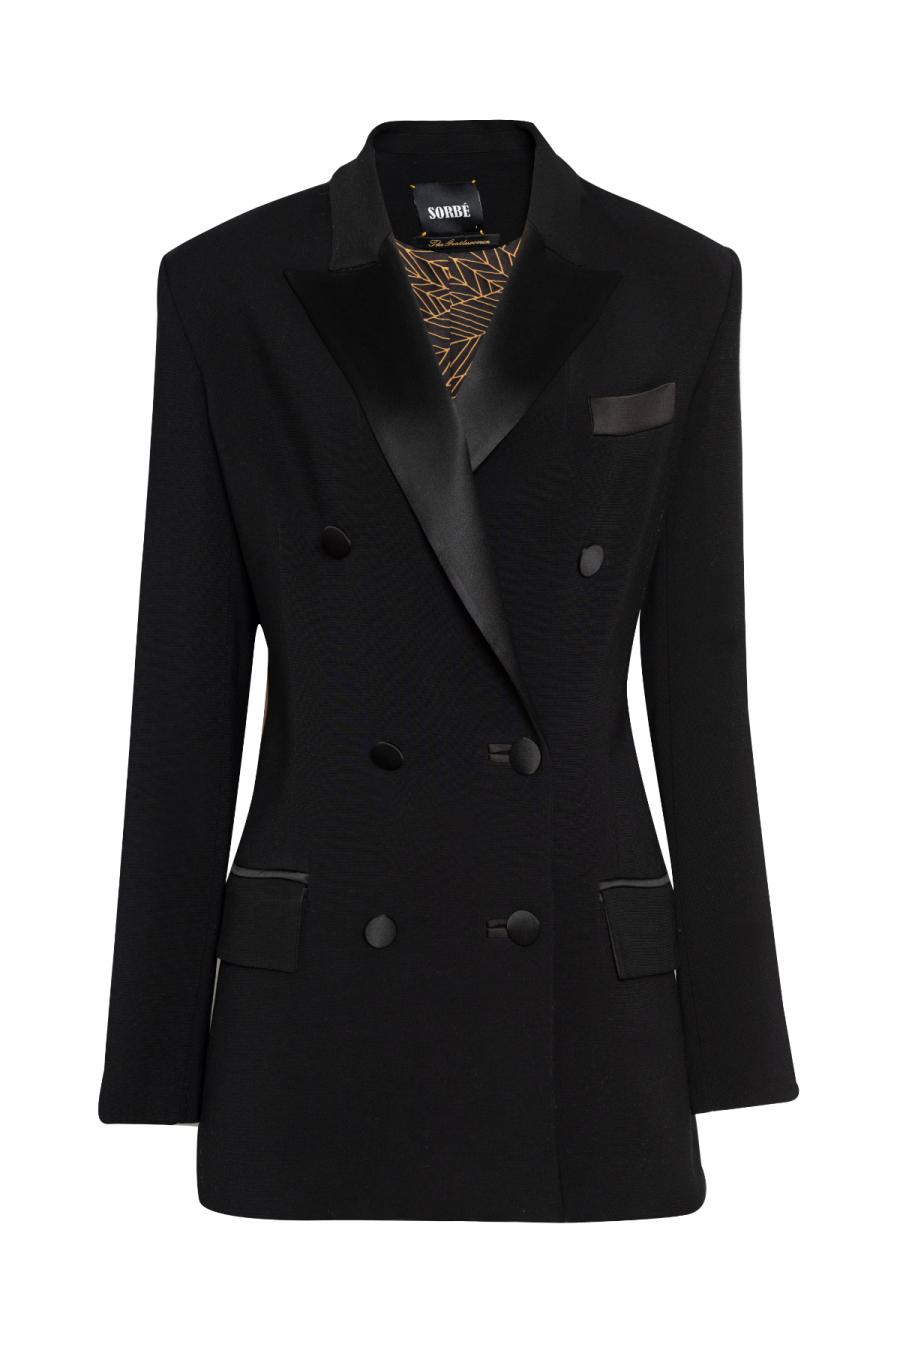 DOUBLE BREASTED BLACK TUXEDO SUIT